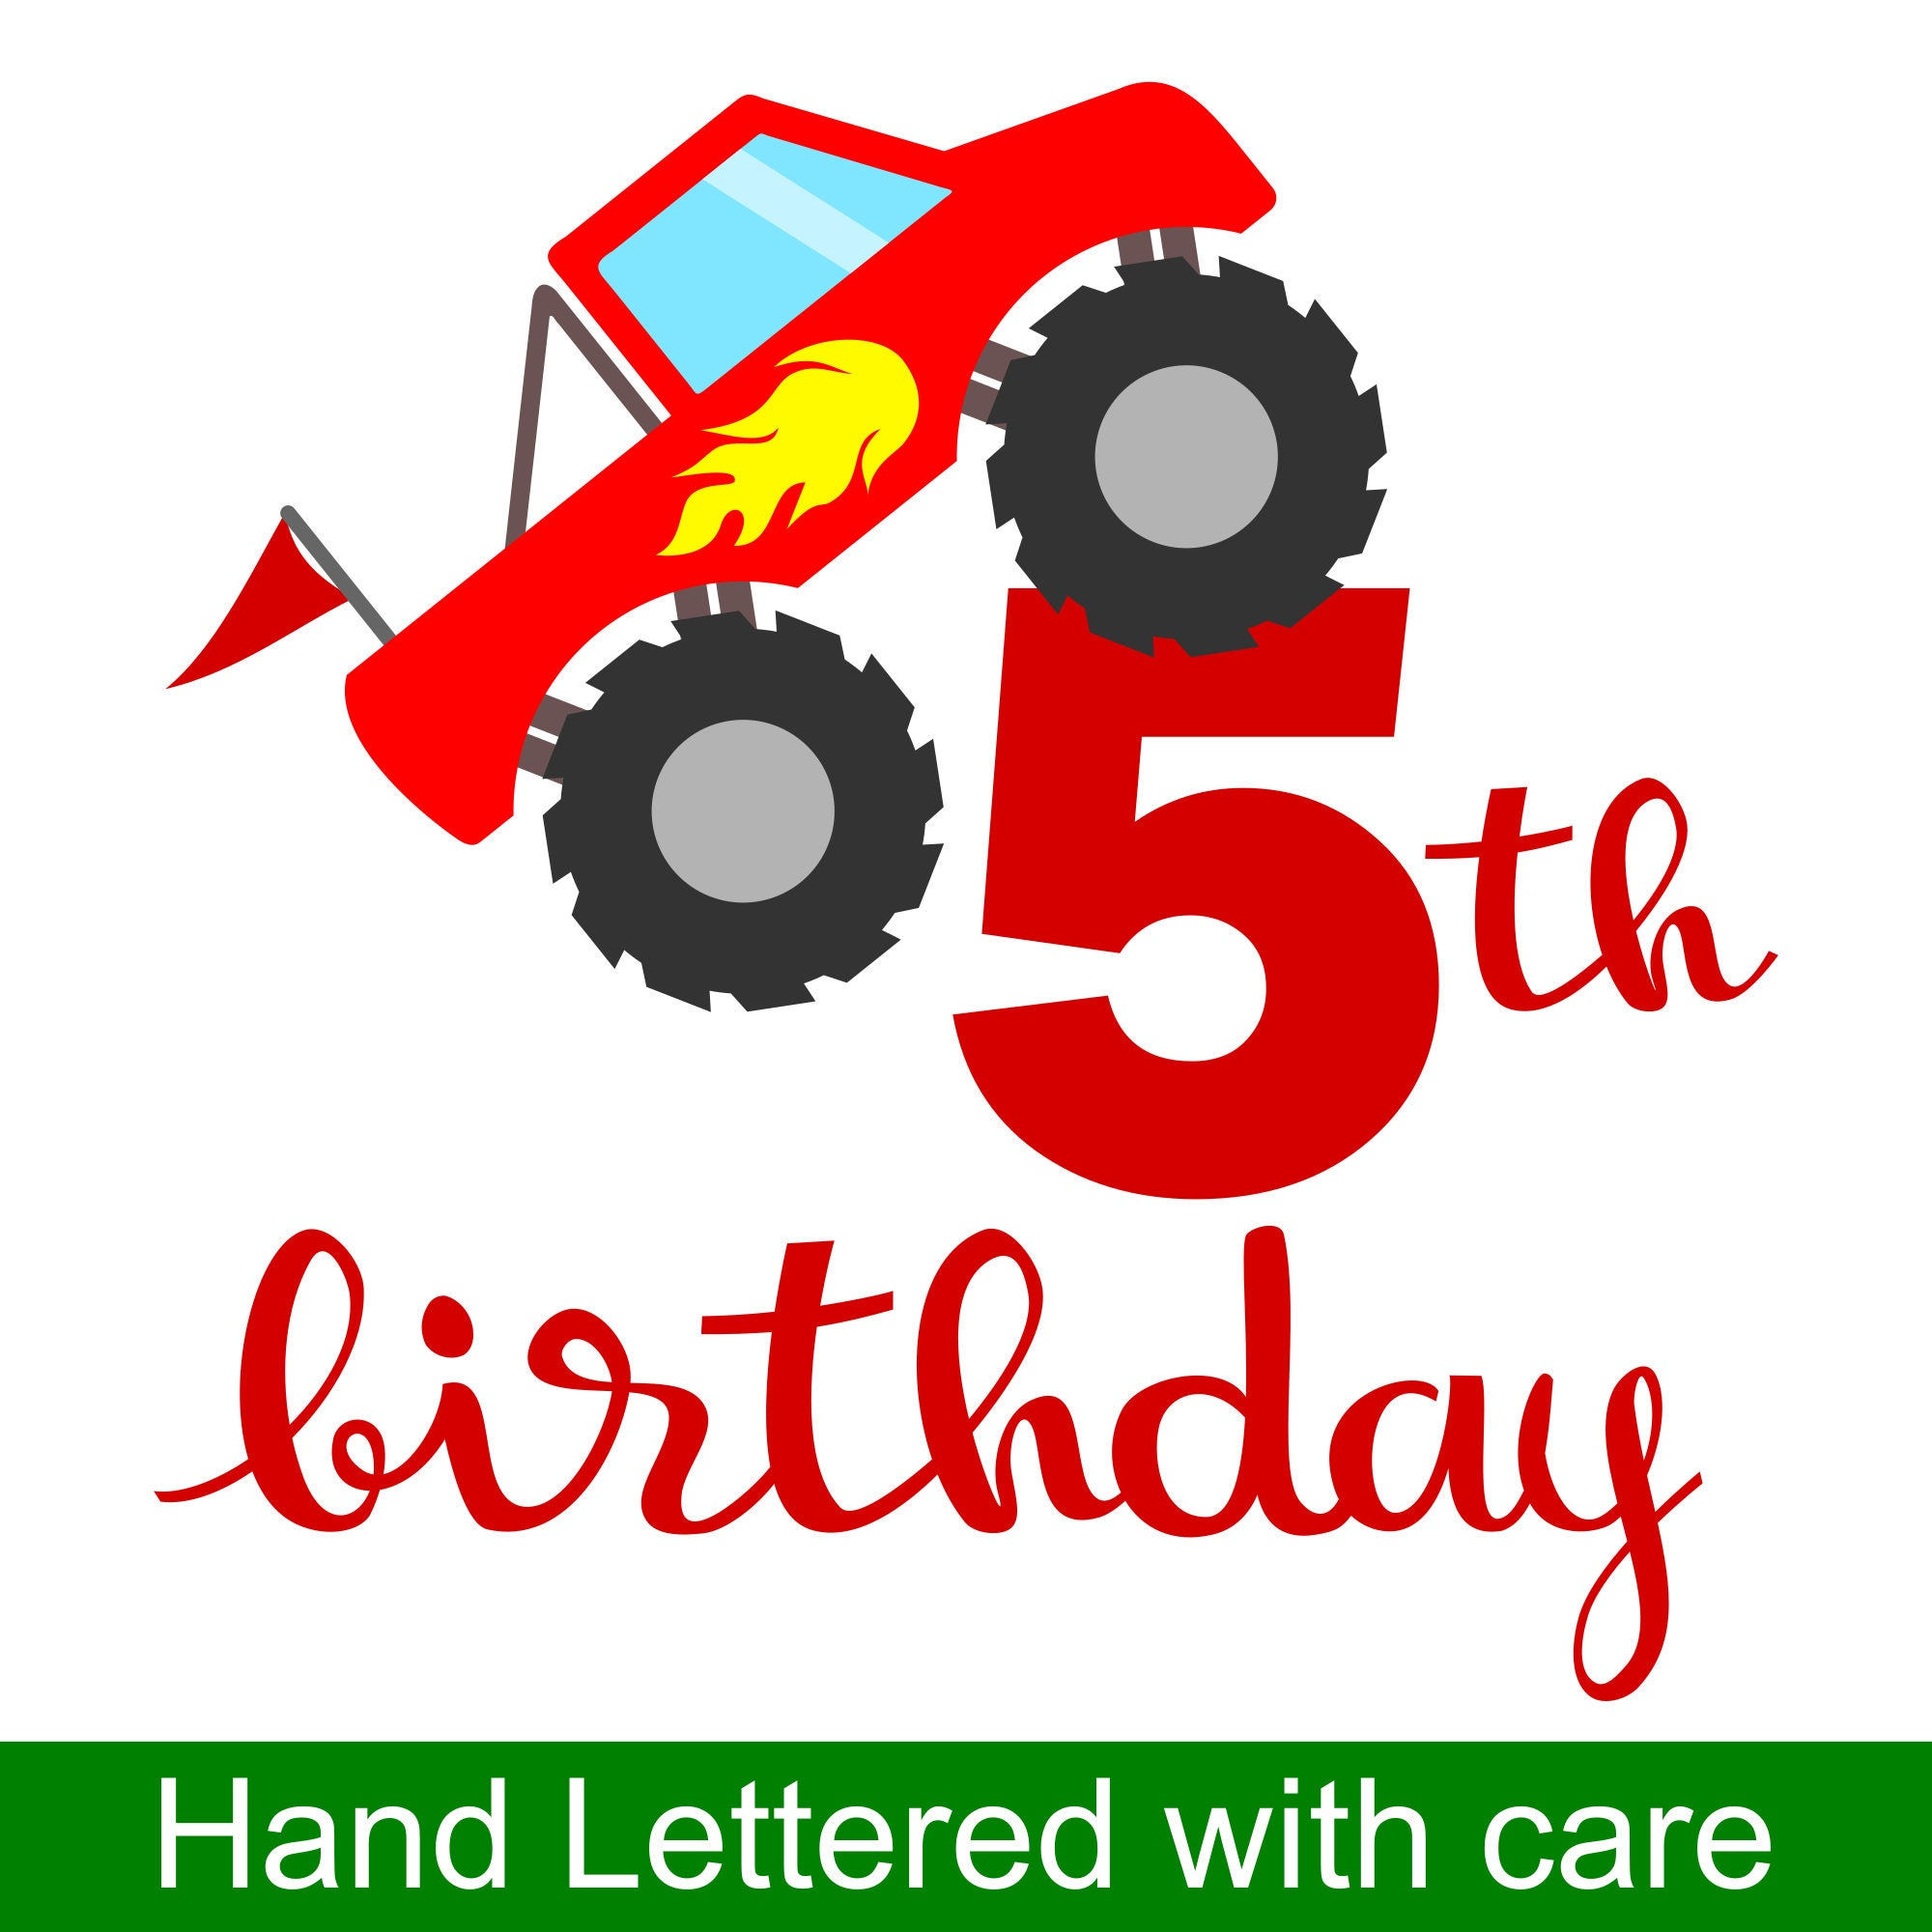 Monster Truck 5th Birthday Svg And Printable Clipart To Make A 5th Birthday Shirt Gift Card Invite Or Invitations For Boys